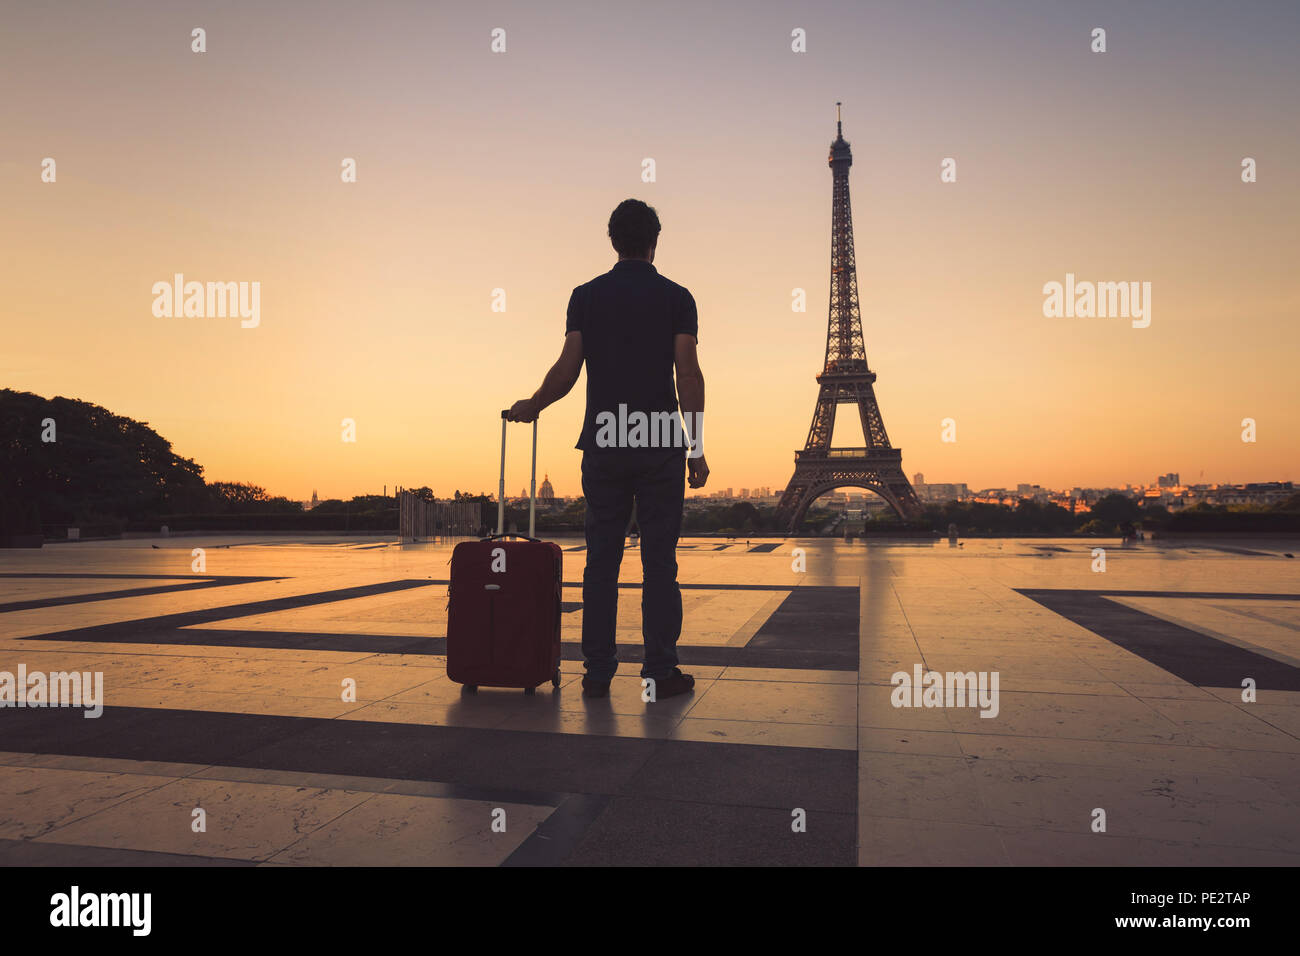 tourist in Paris looking at Eiffel Tower, silhouette of man with luggage travel to France Stock Photo